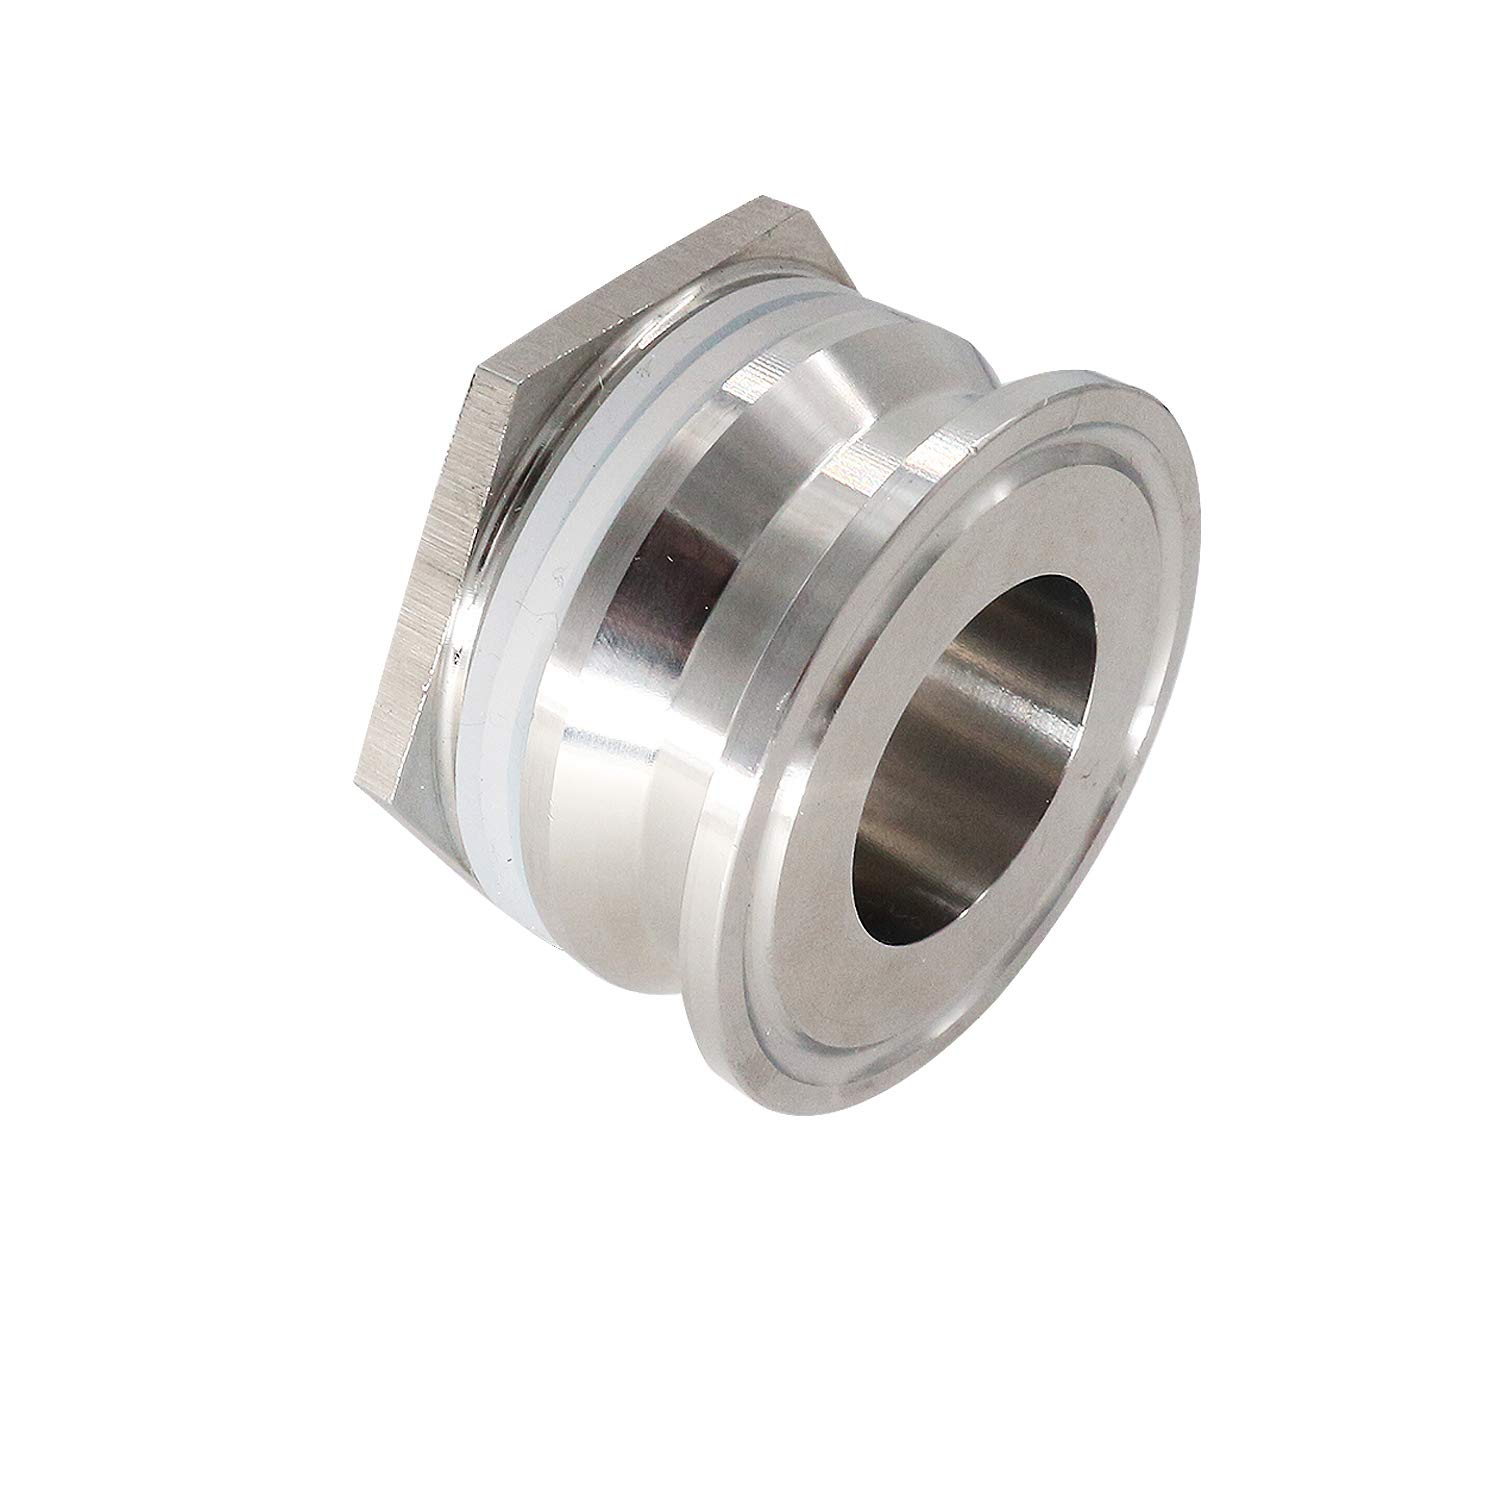 Bulkhead Compression Fitting 1.5'' TC homebrew Weldless Bulkehad 304 Stainless Steel Homebrew Kettle Bulkhead by CRBrewBeer